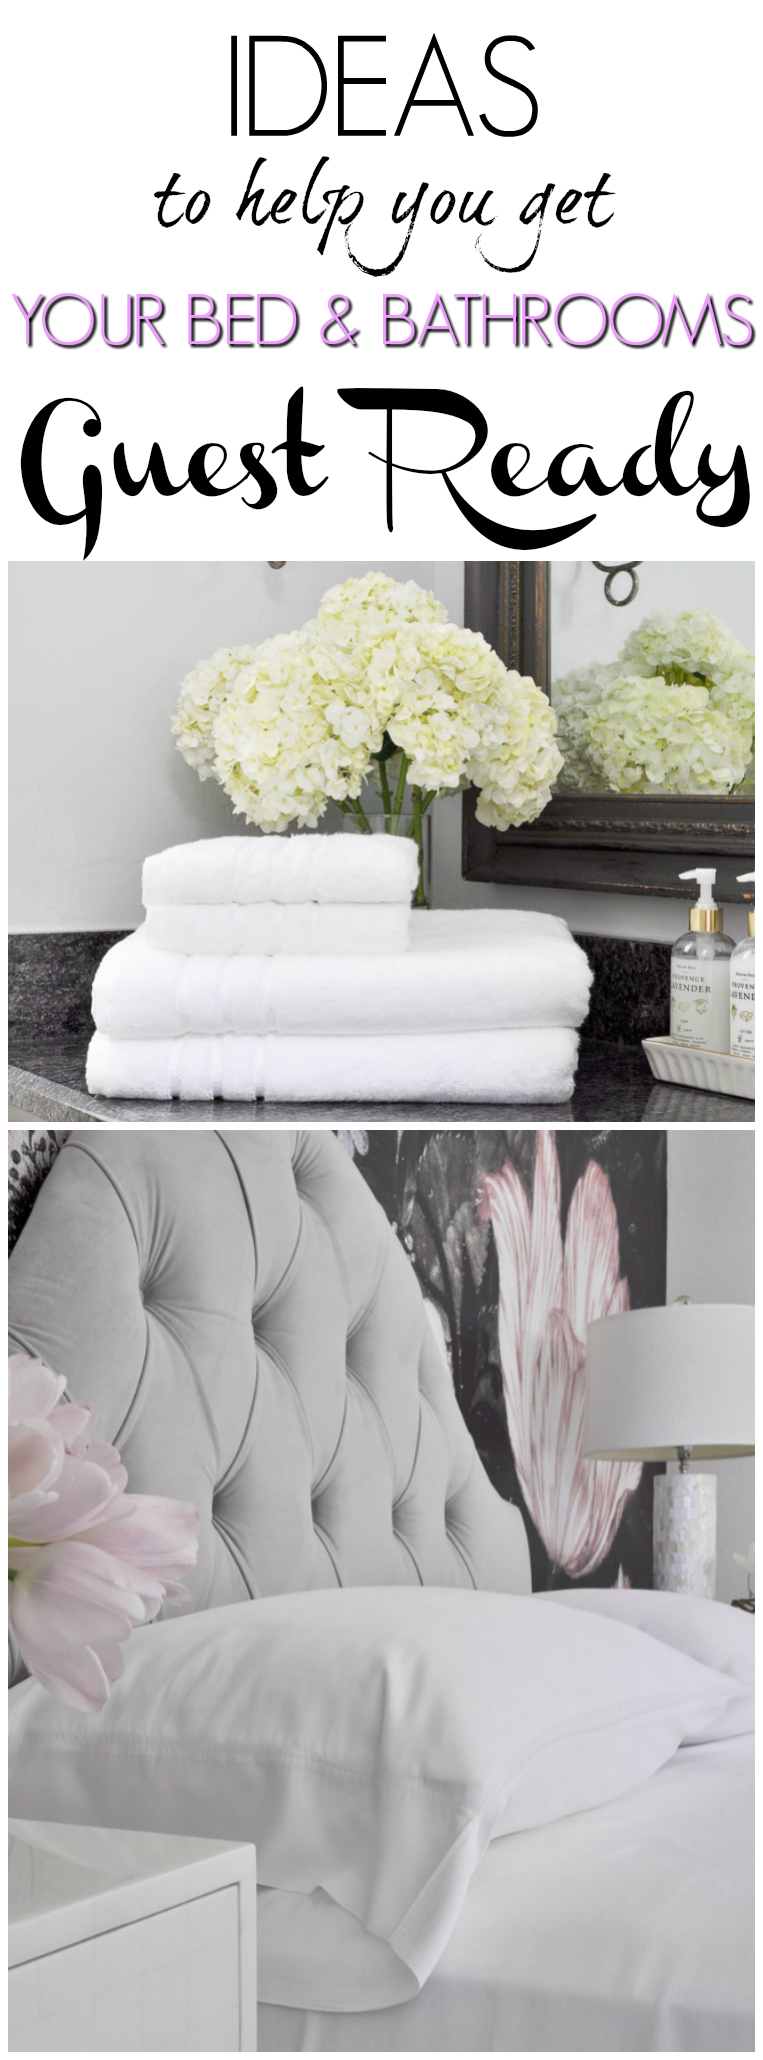 Get your bedroom and bathroom guest ready